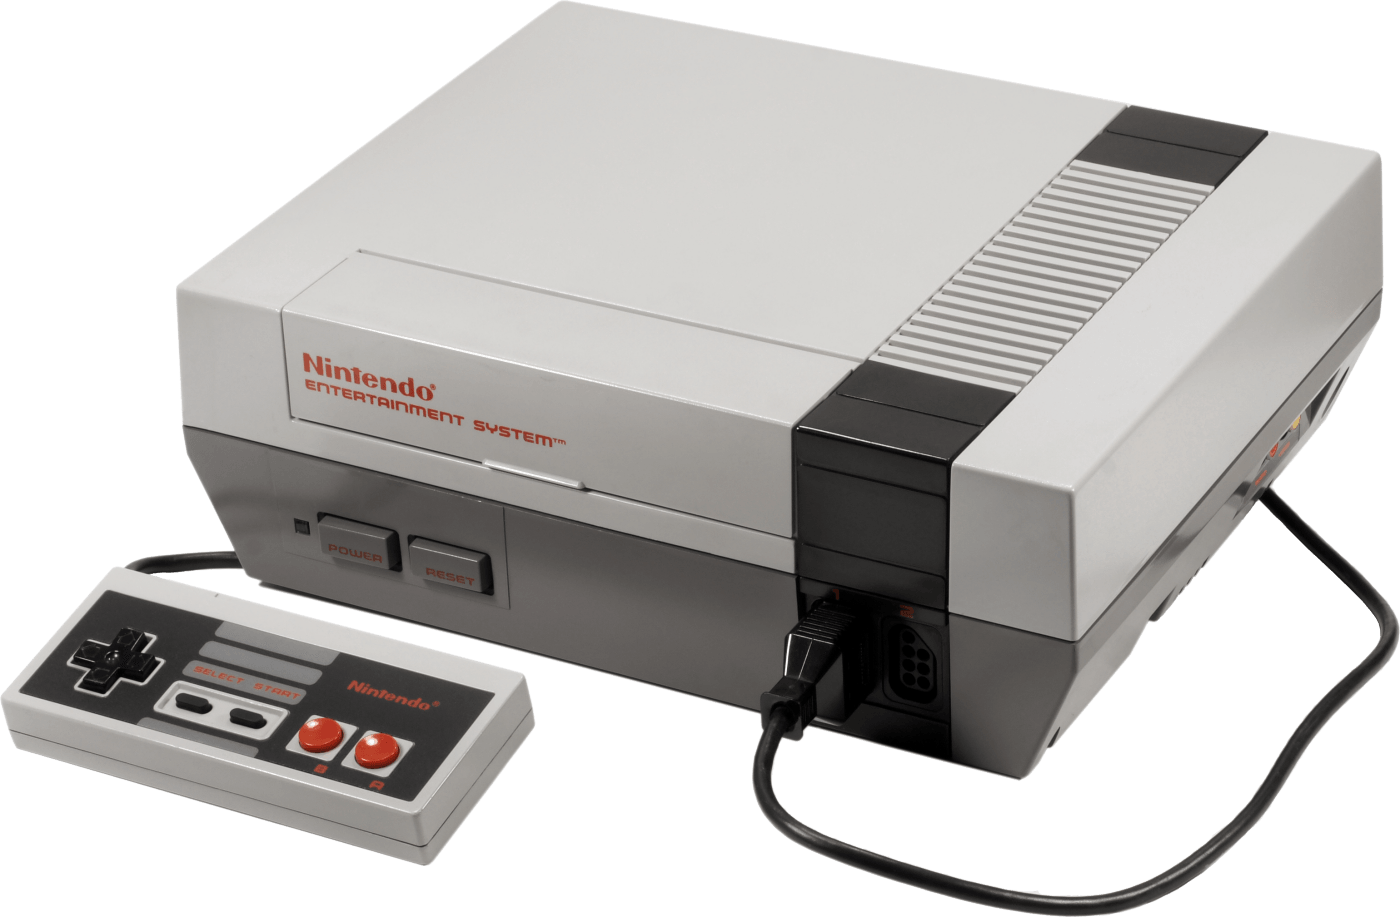 nintendo entertainment system png